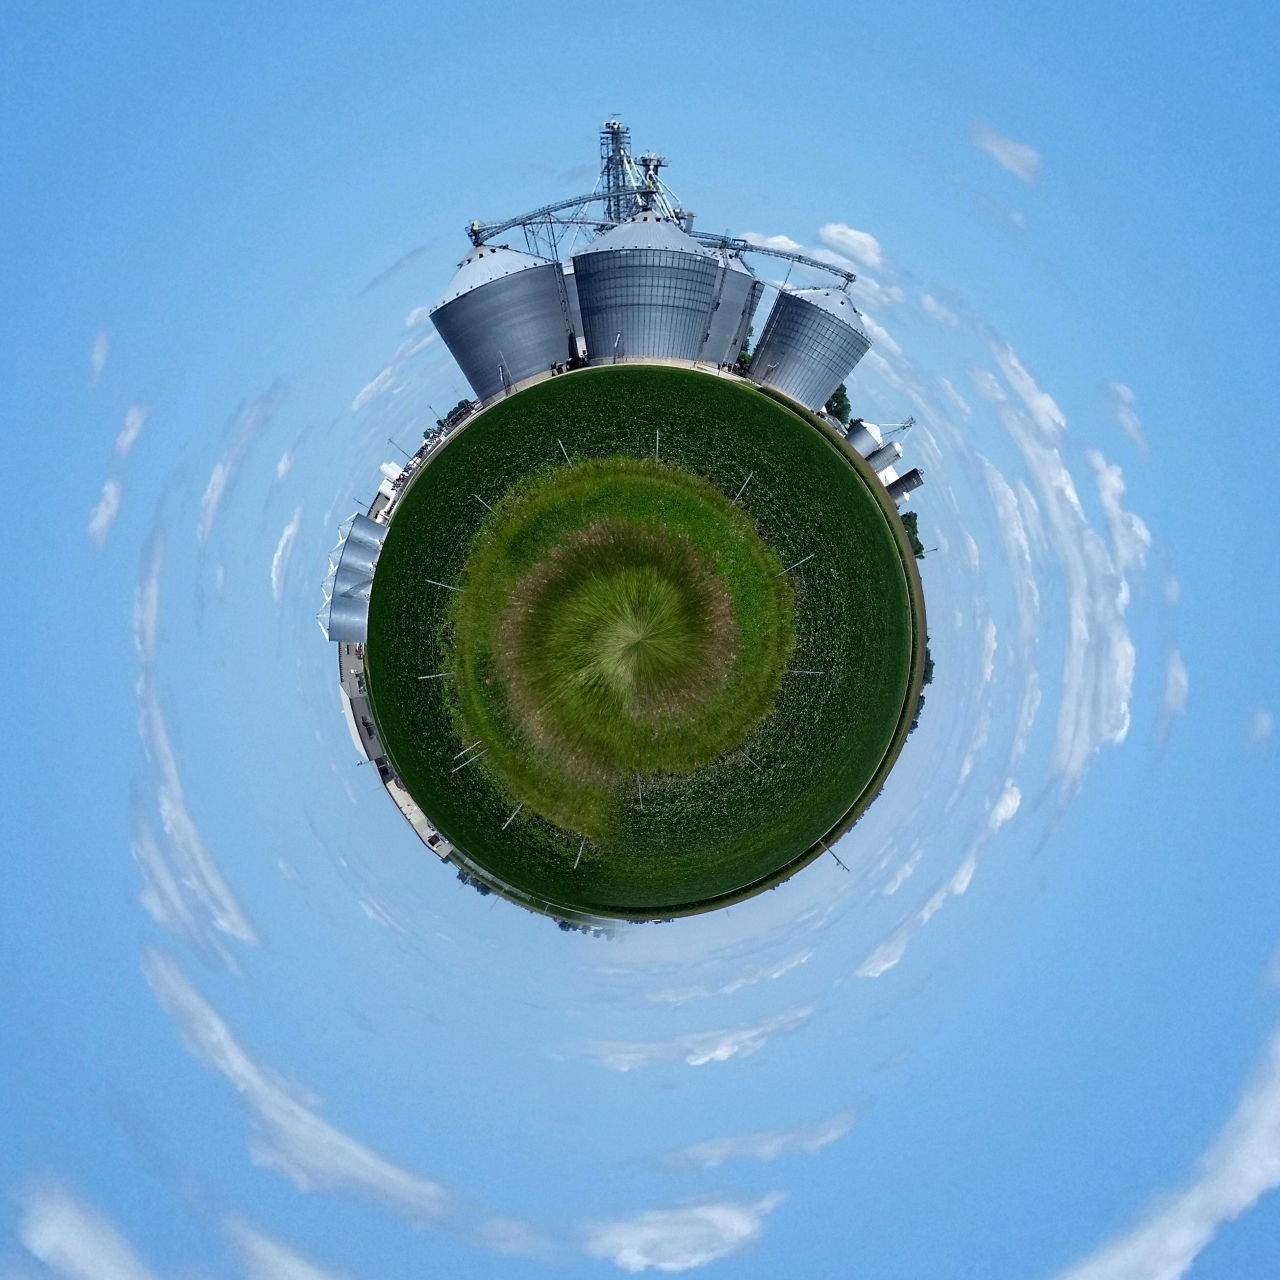 Corn silos in central Illinois.<br /> Tiny Planet, Snapped for bringing out the sky.